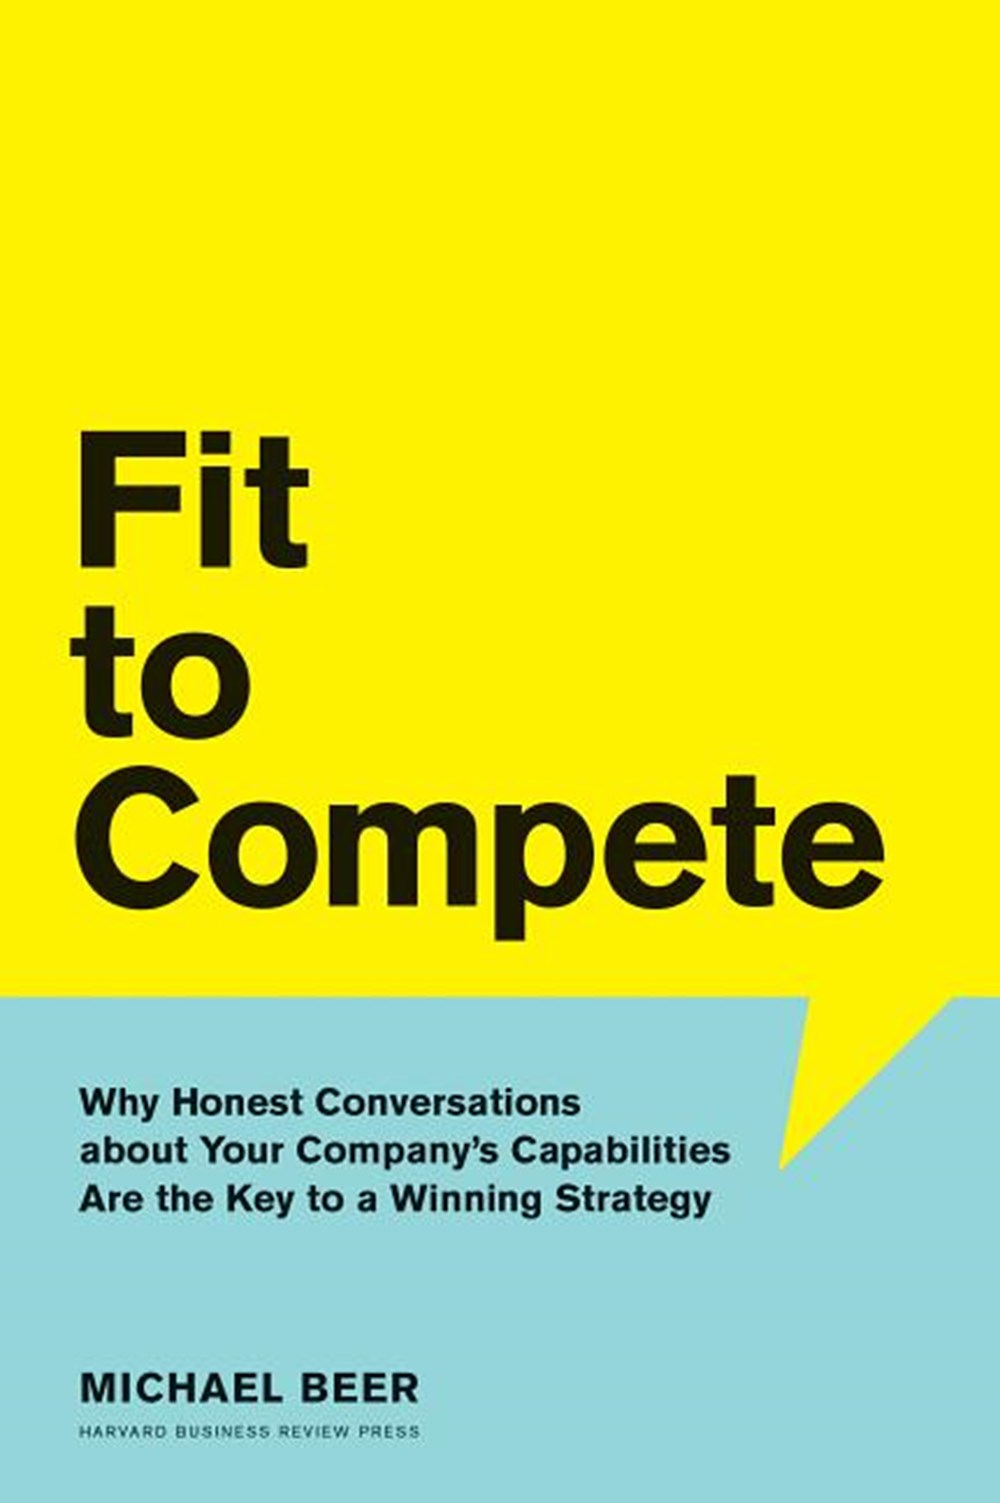 Fit to Compete: Why Honest Conversations about Your Company's Capabilities Are the Key to a Winning